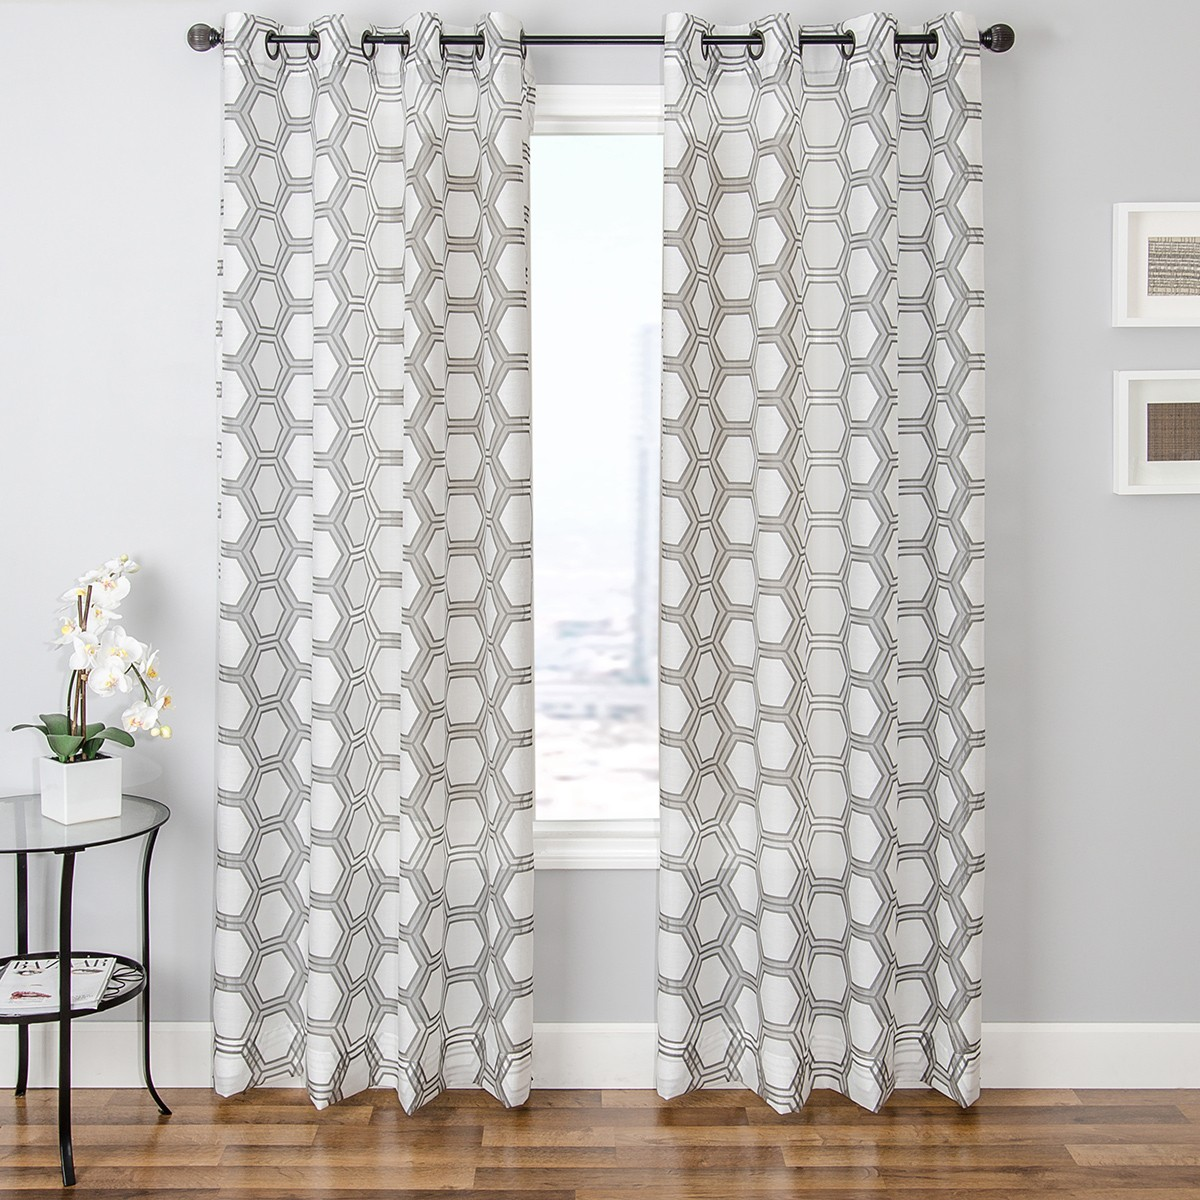 adorn your interior with white patterned curtains homesfeed